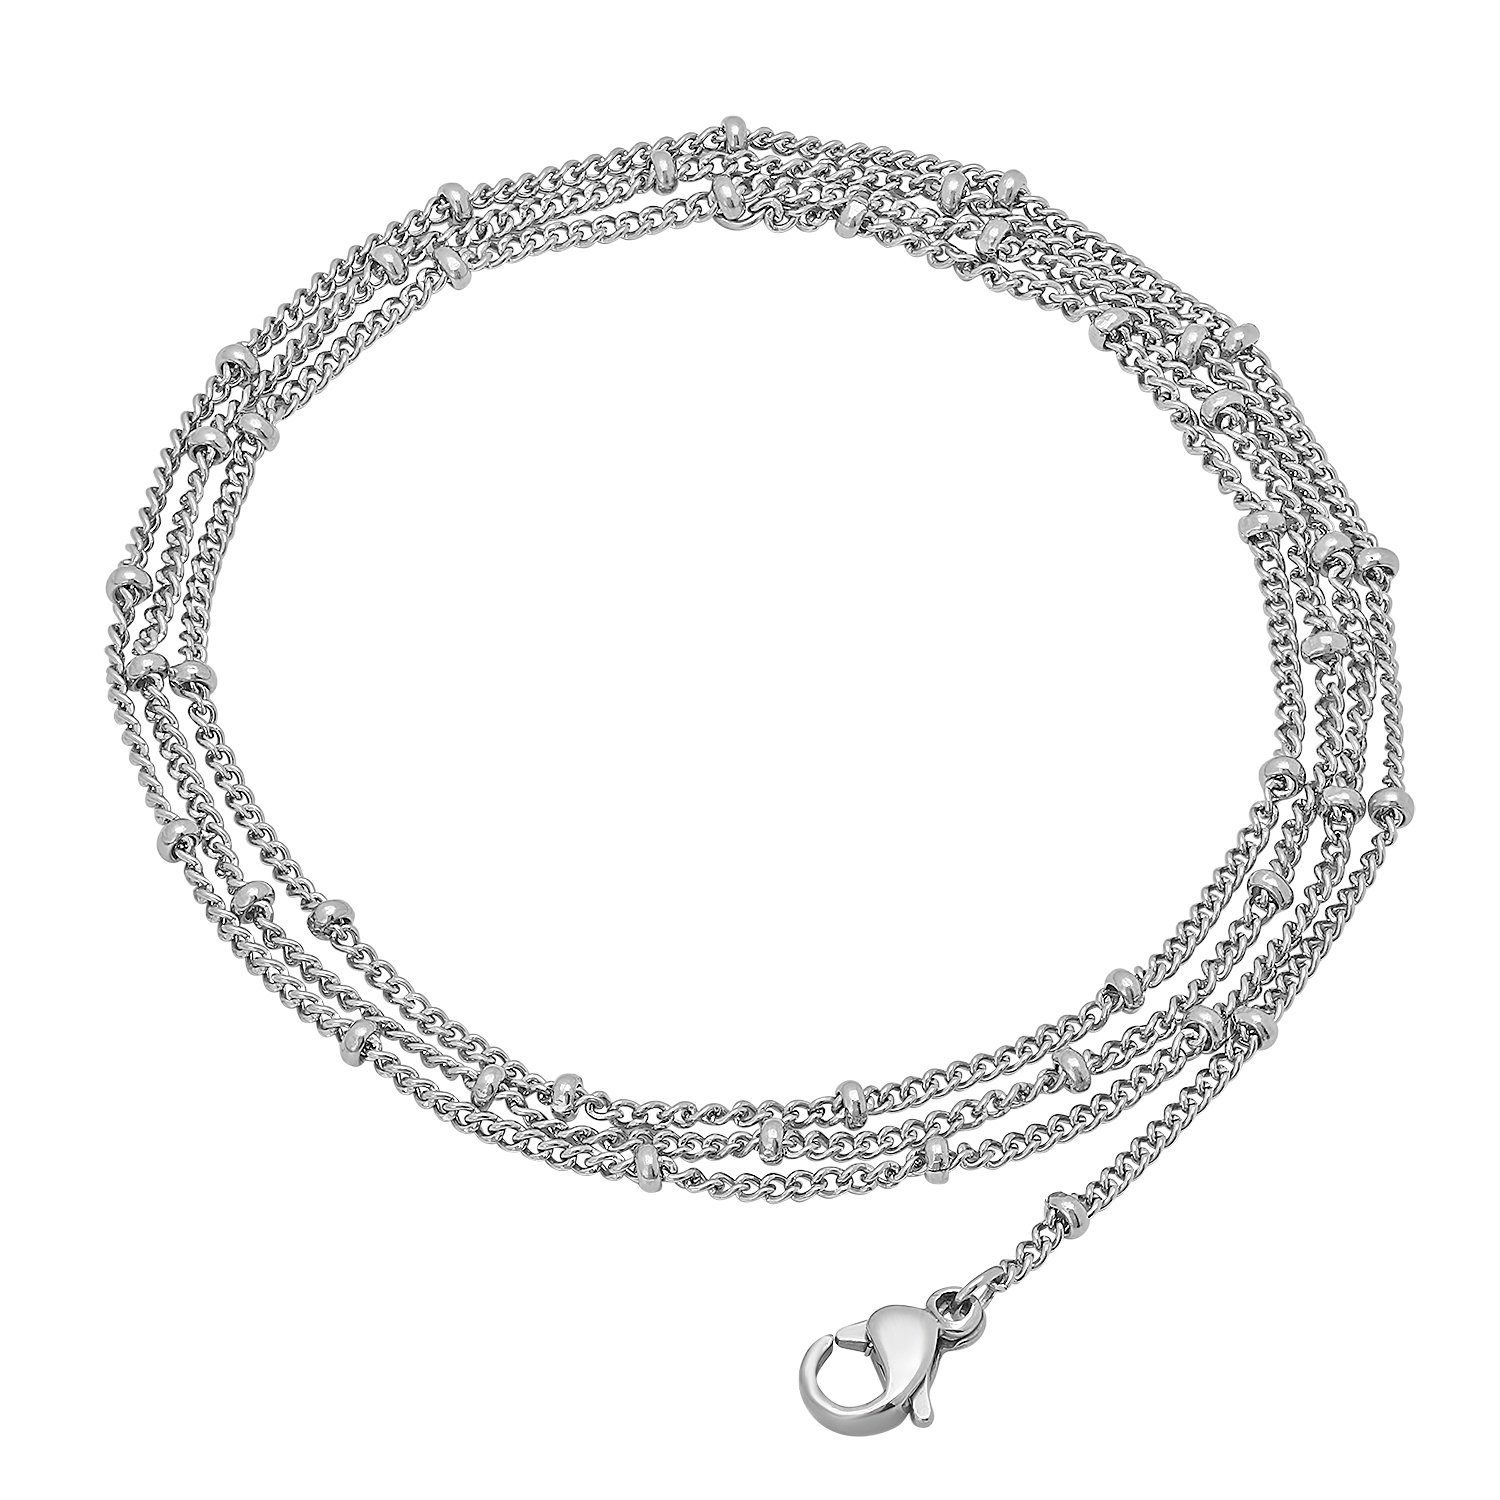 20 The Bling Factory 2.2mm Stainless Steel Station Bead Curb Link Chain Necklace